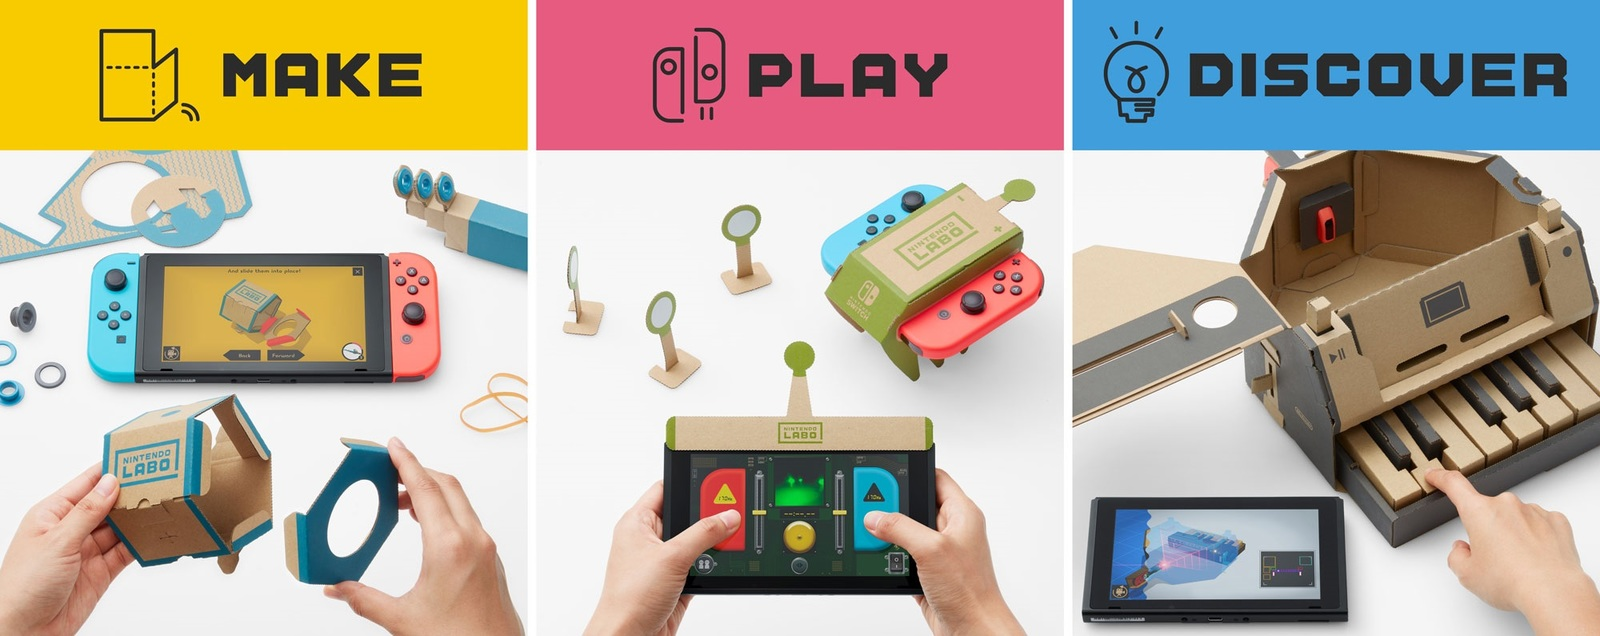 Nintendo Labo Toy-Con 01 Variety Kit for Nintendo Switch image